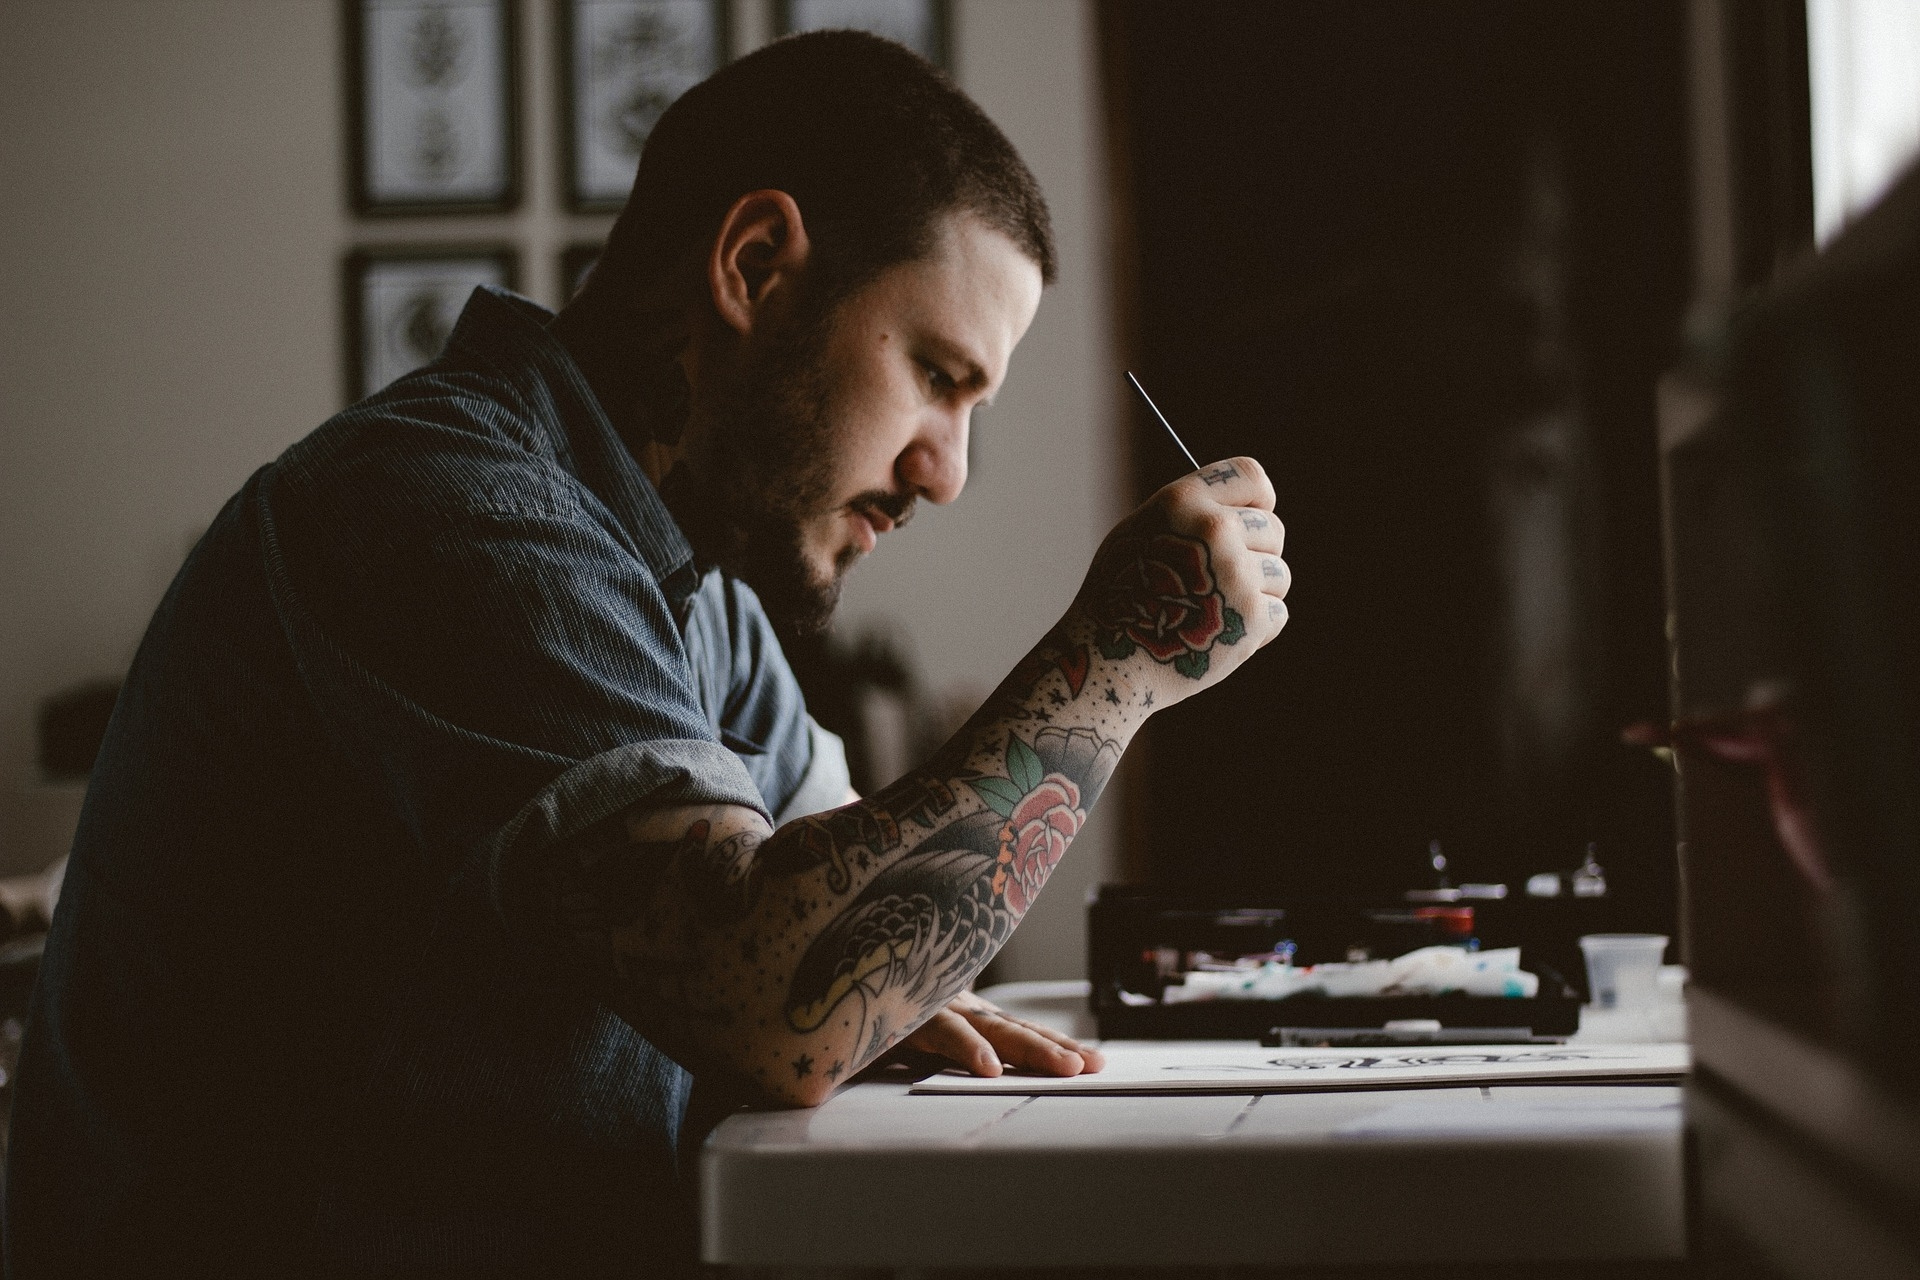 Man with arm tattoo writing